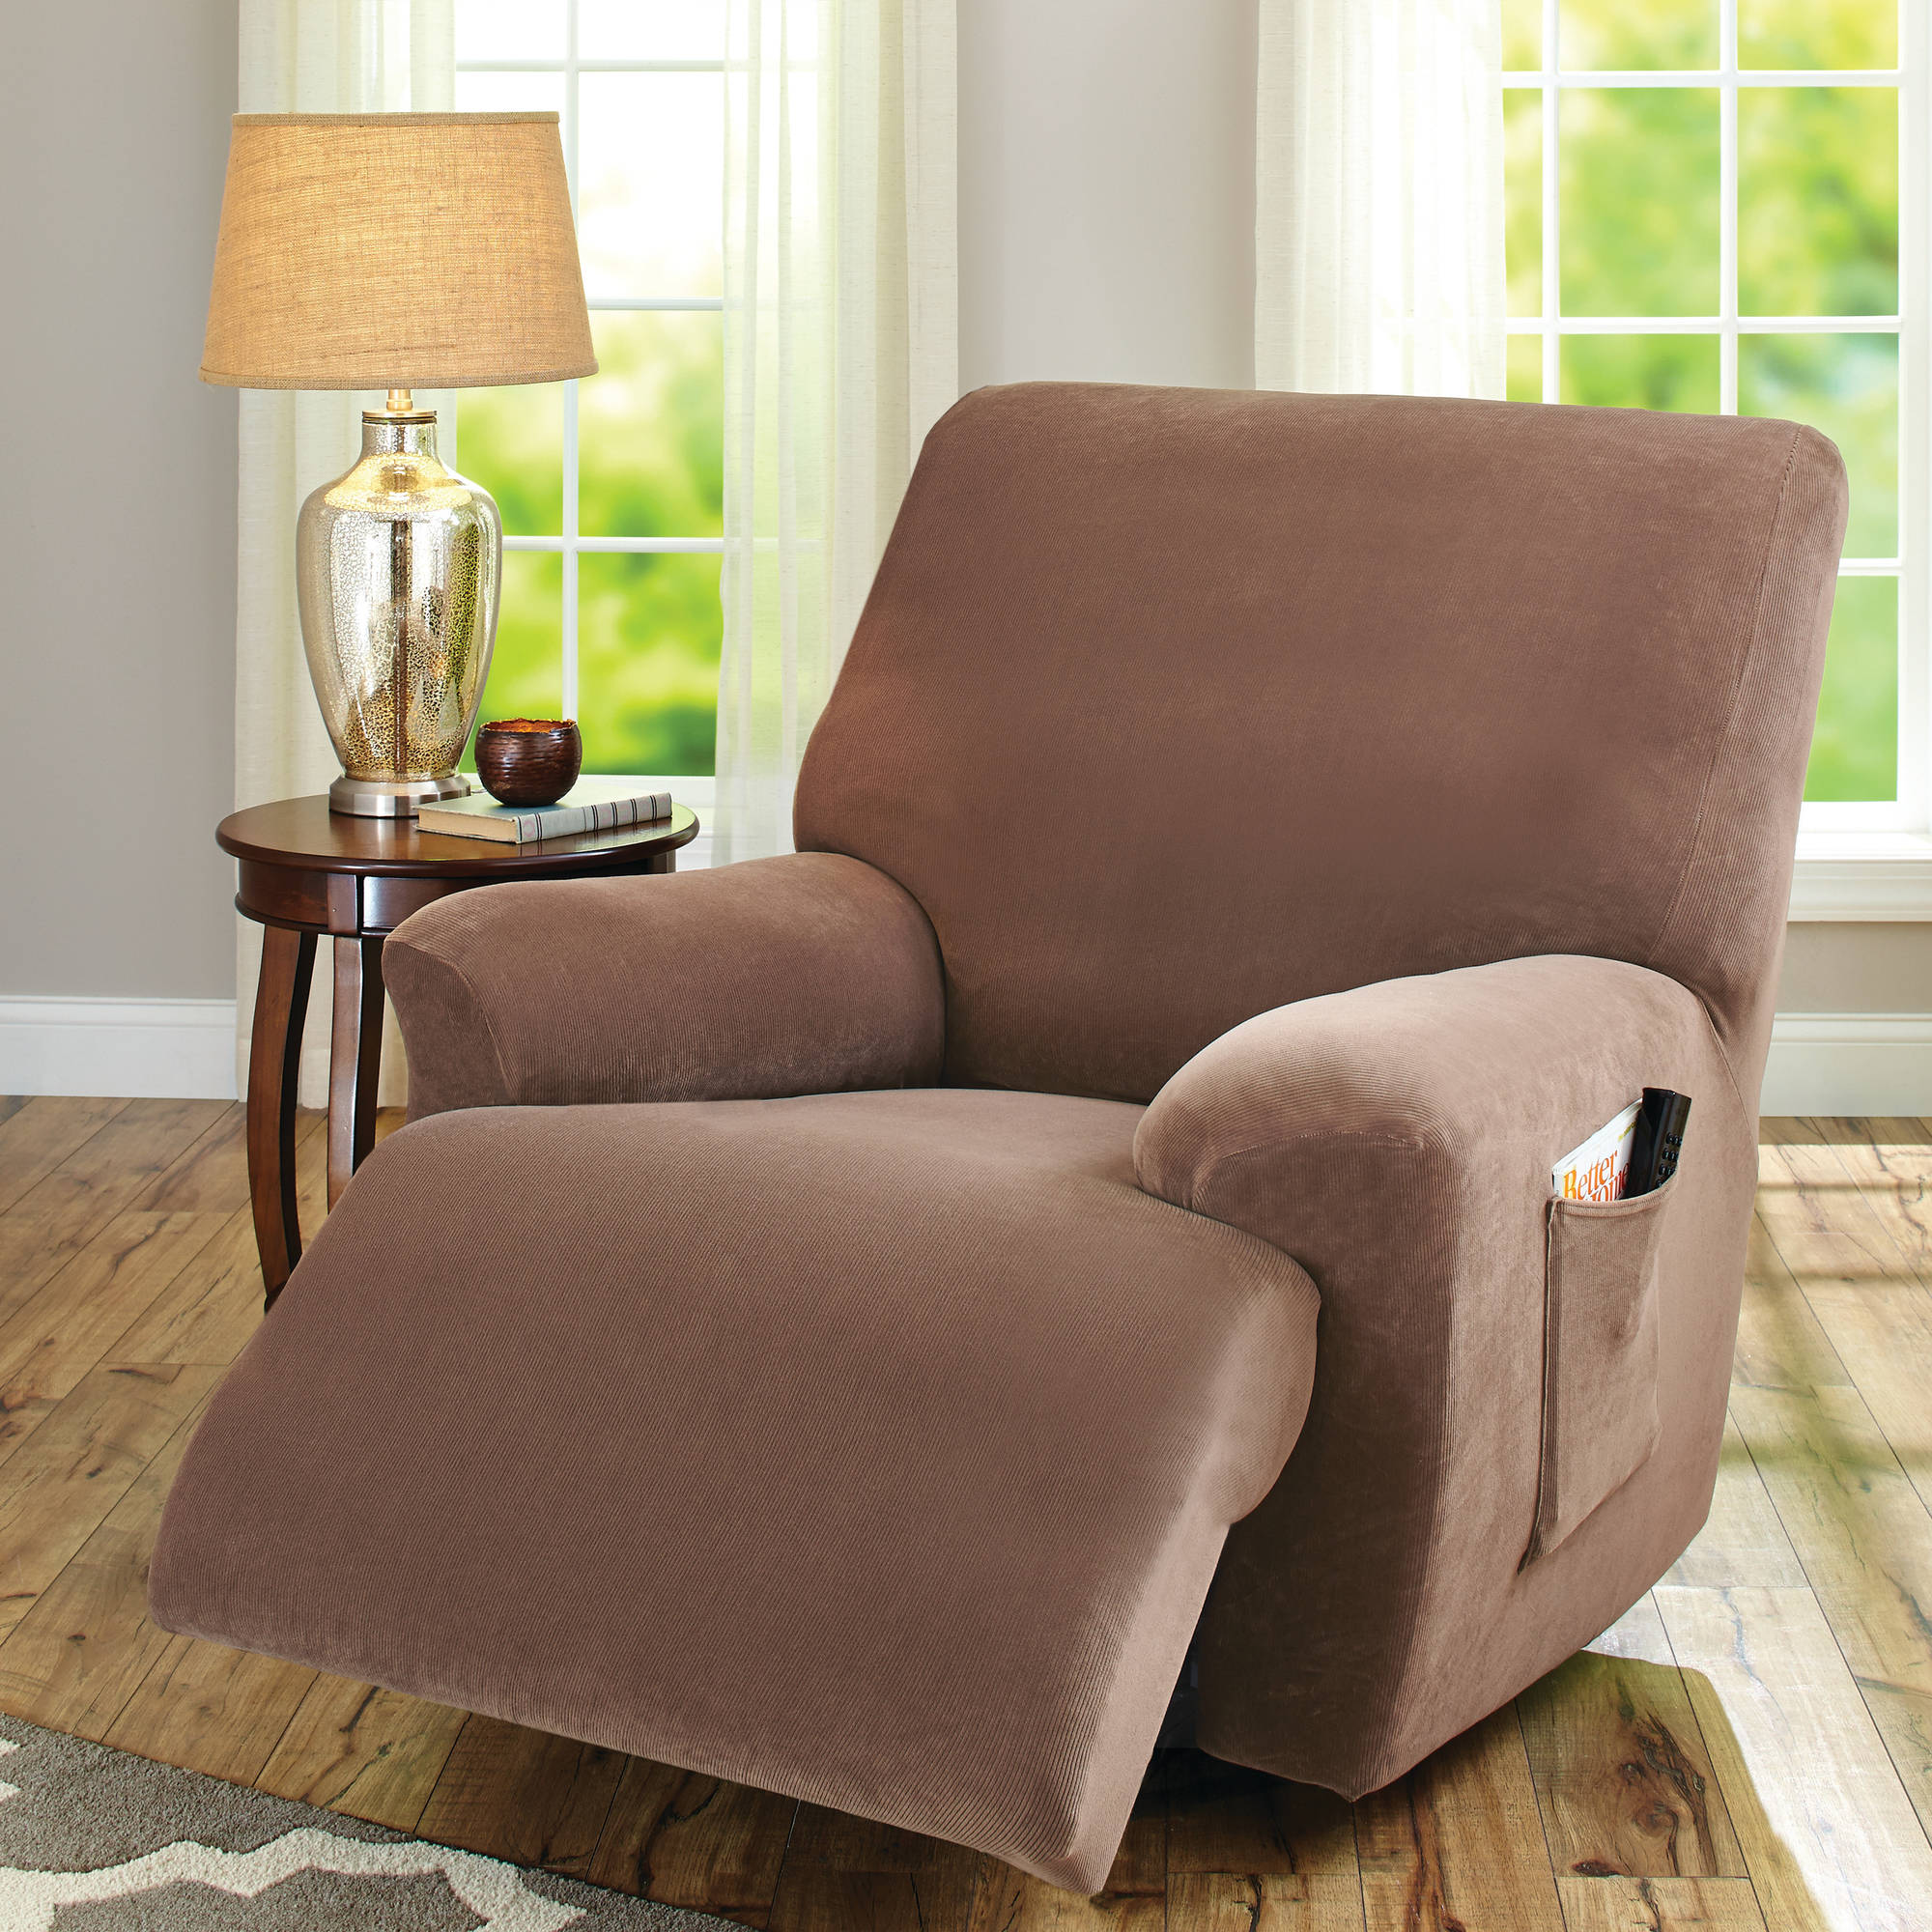 Better Homes and Gardens One-Piece Stretch Fine Corduroy Recliner Slipcover by